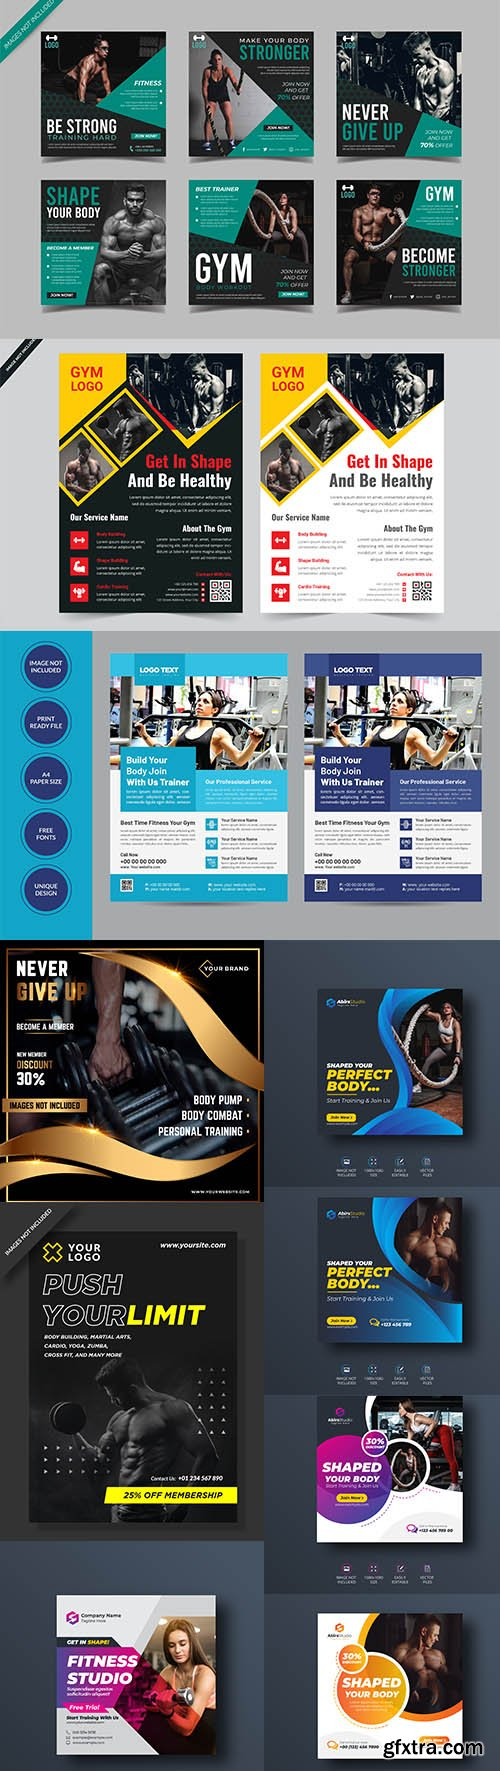 Gym and fitness flyer template collection Vol 4